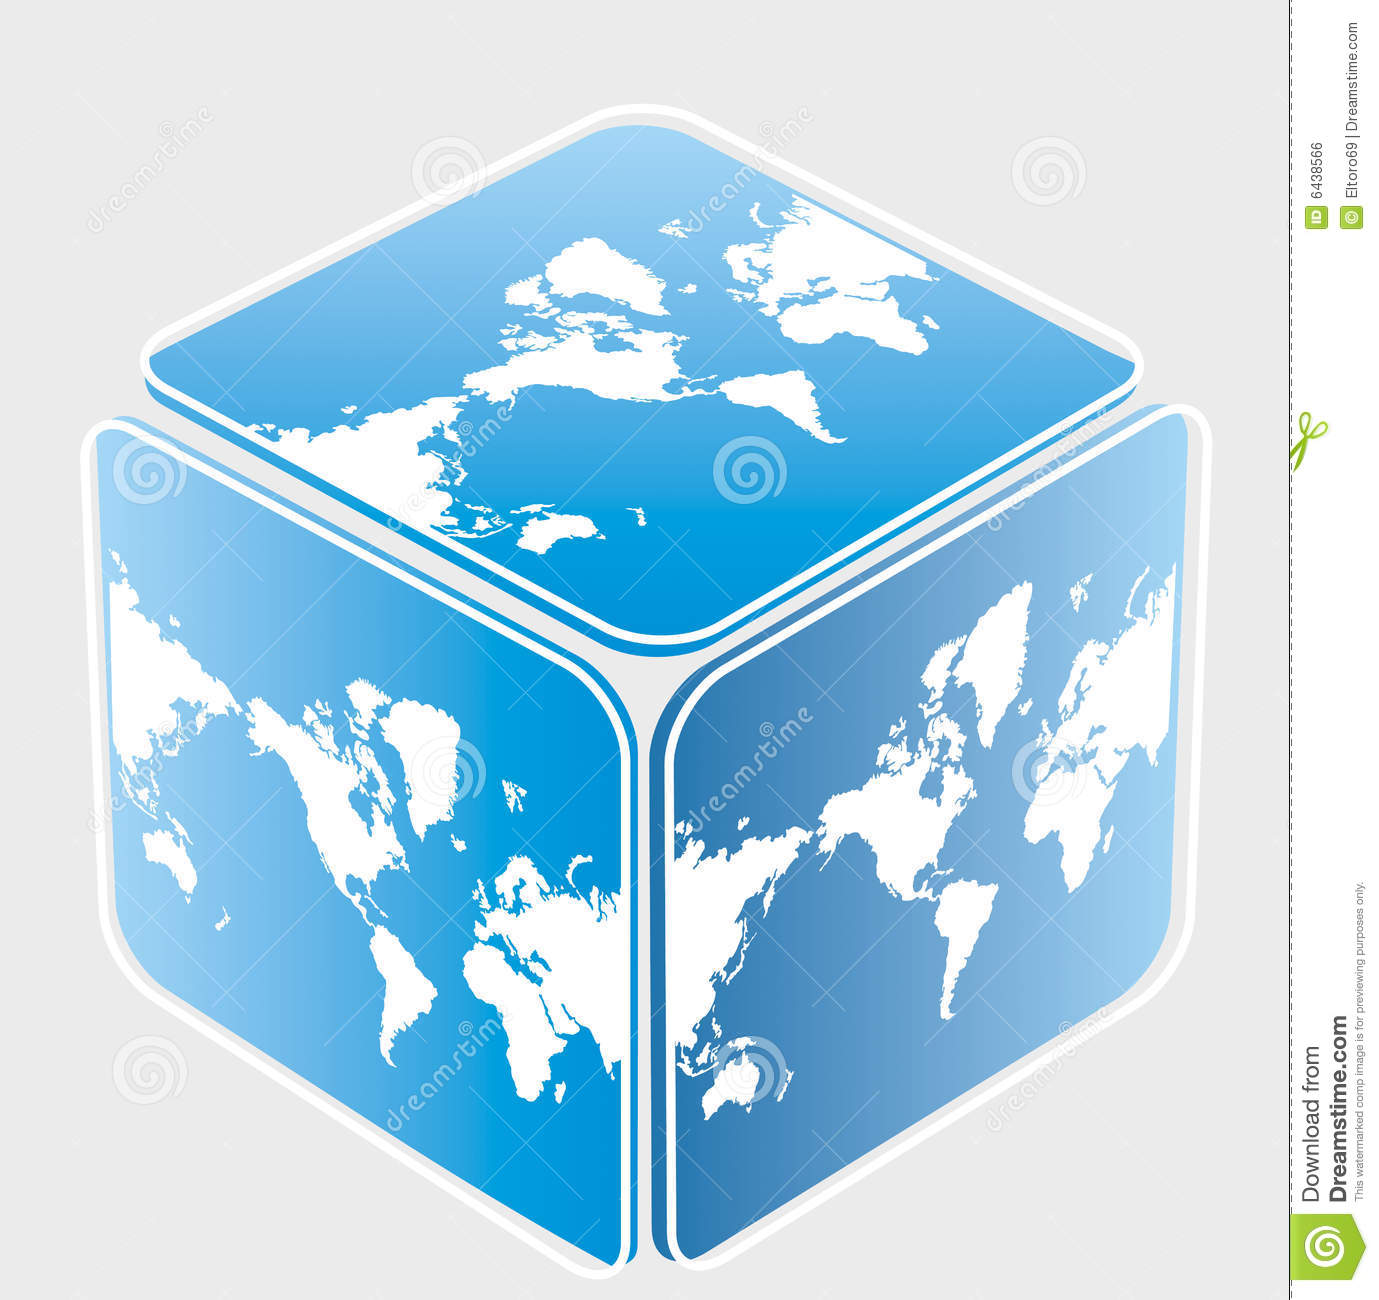 Cube World Map.Cube World Map Stock Illustrations 501 Cube World Map Stock